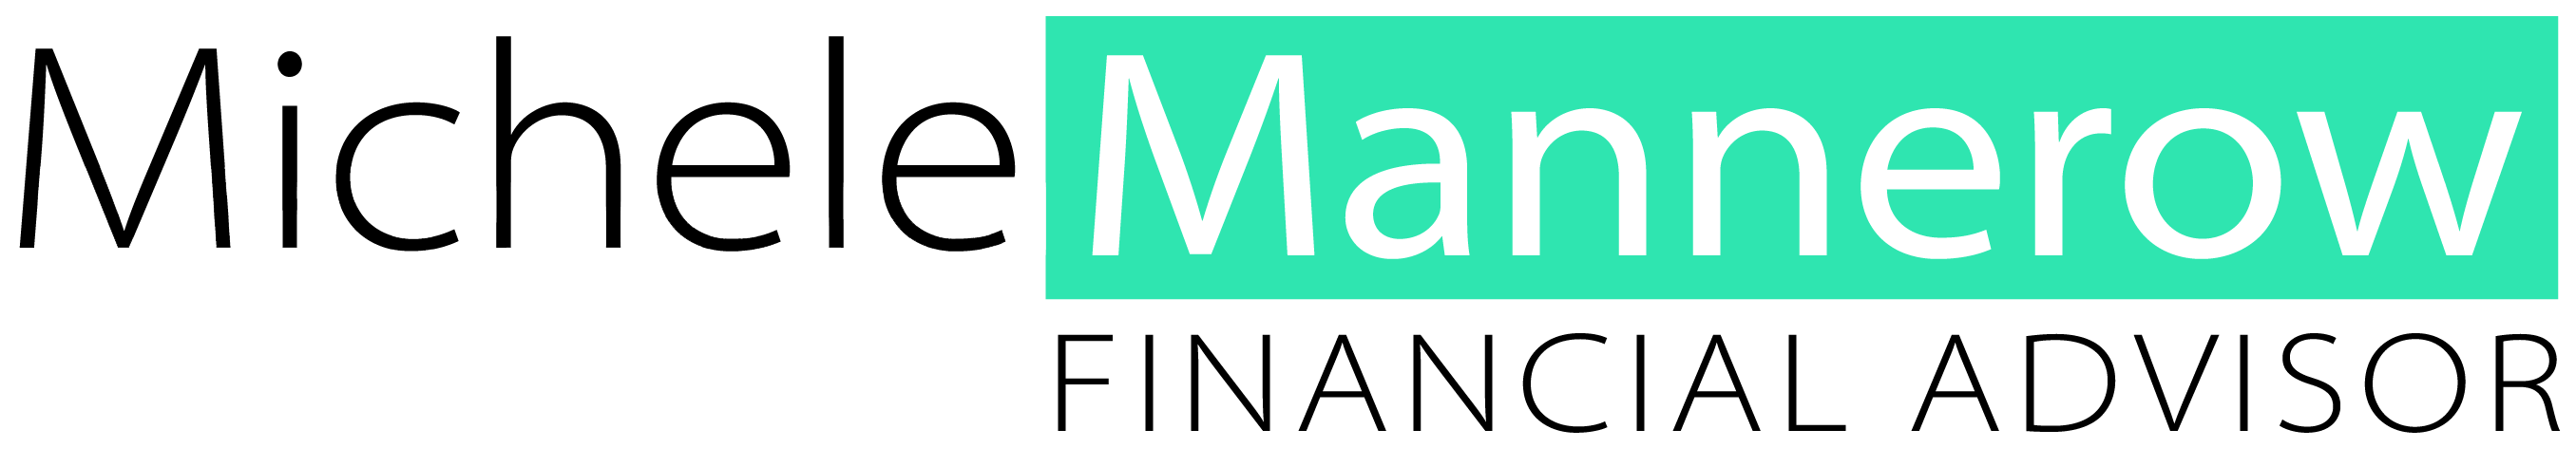 Michele Mannerow CFP - Financial Advisor - Owen Sound